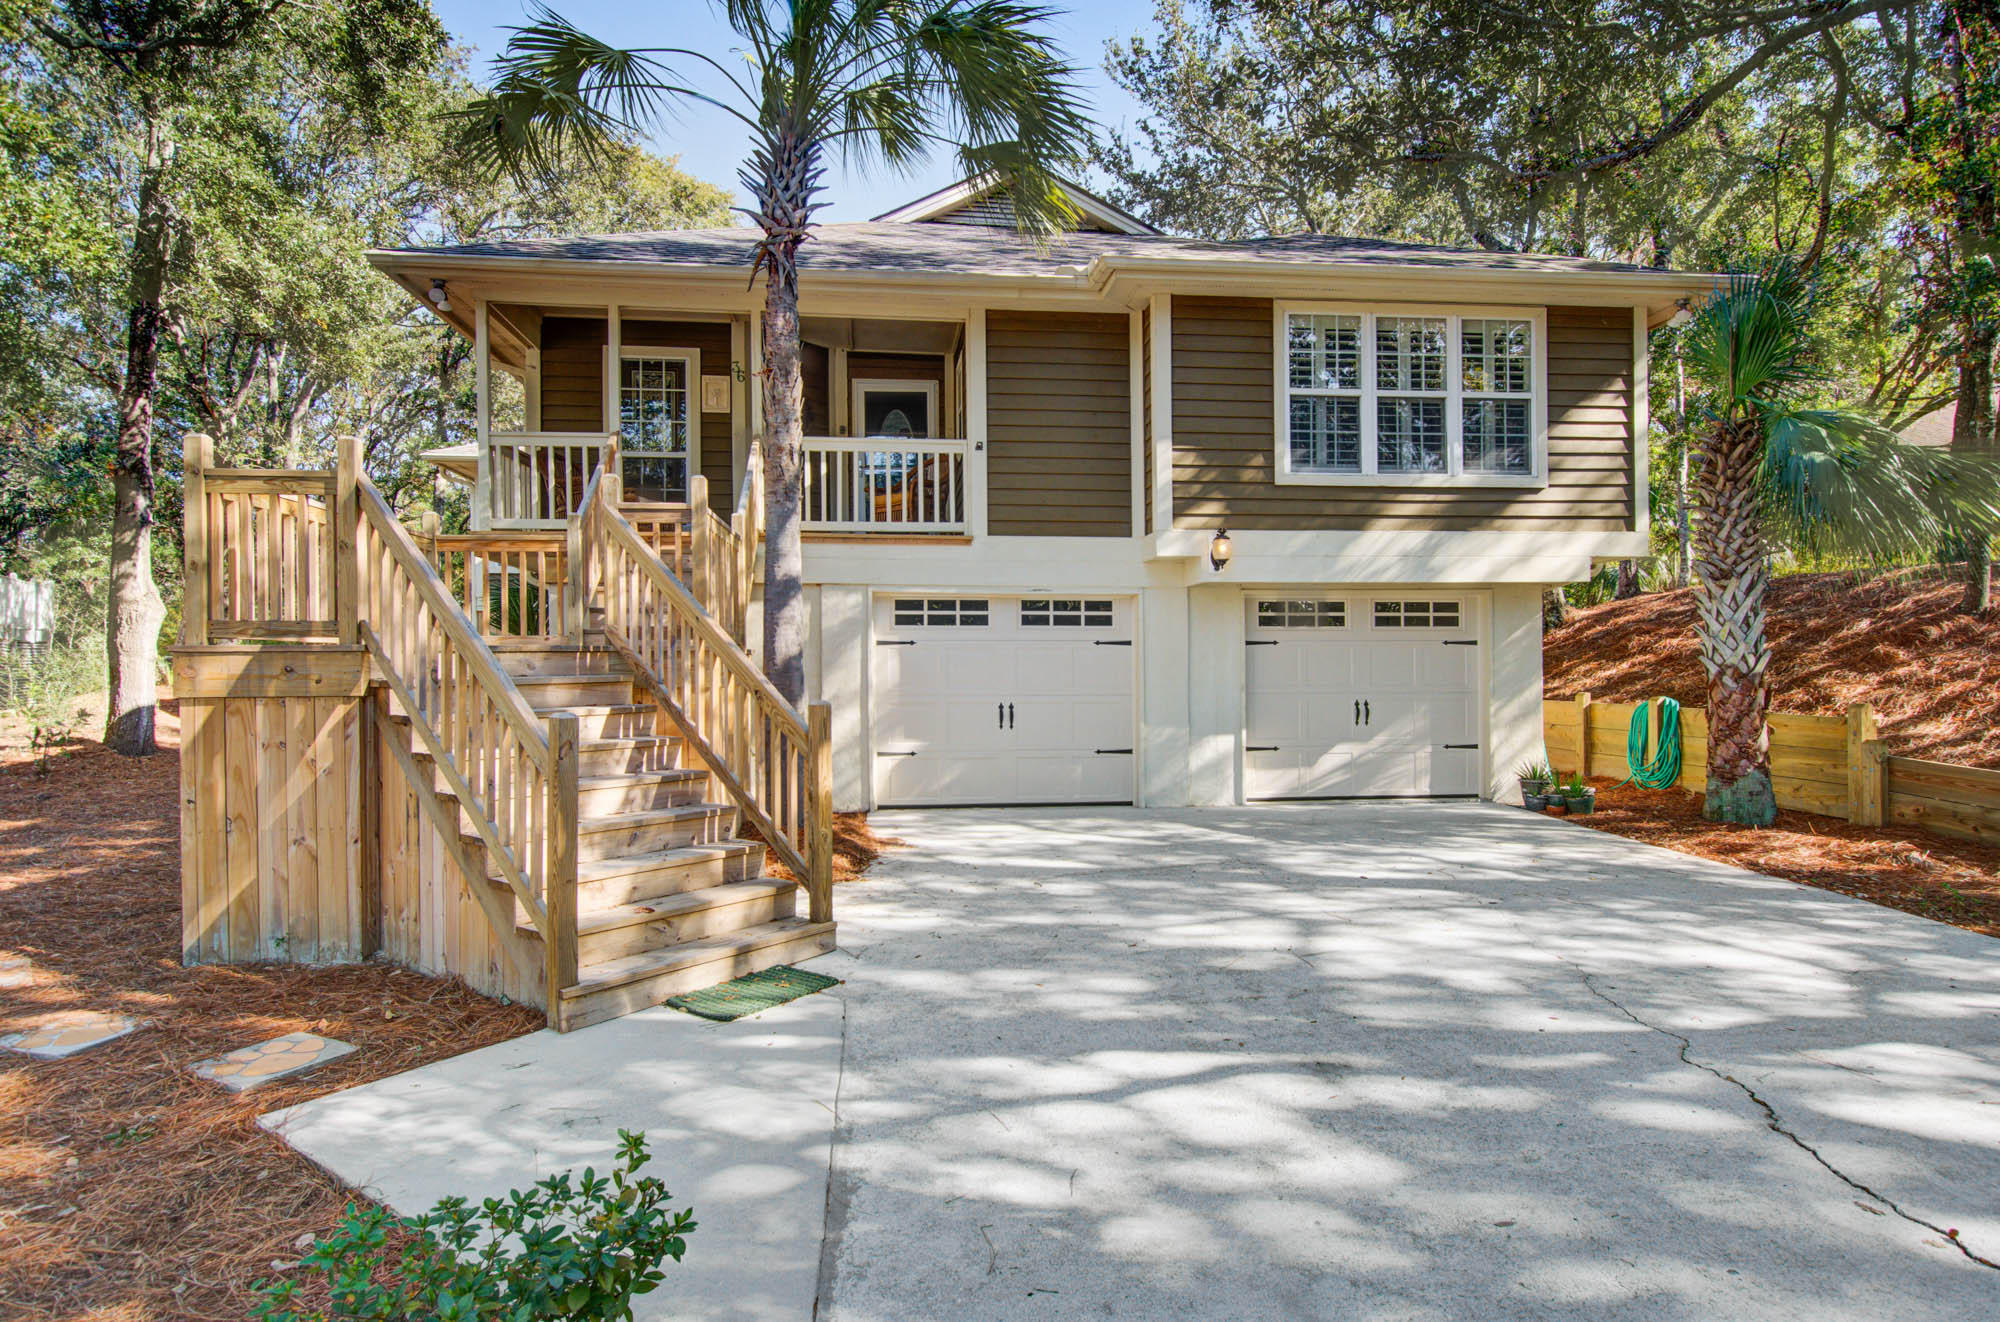 36 W Beachwood Isle Of Palms, SC 29451